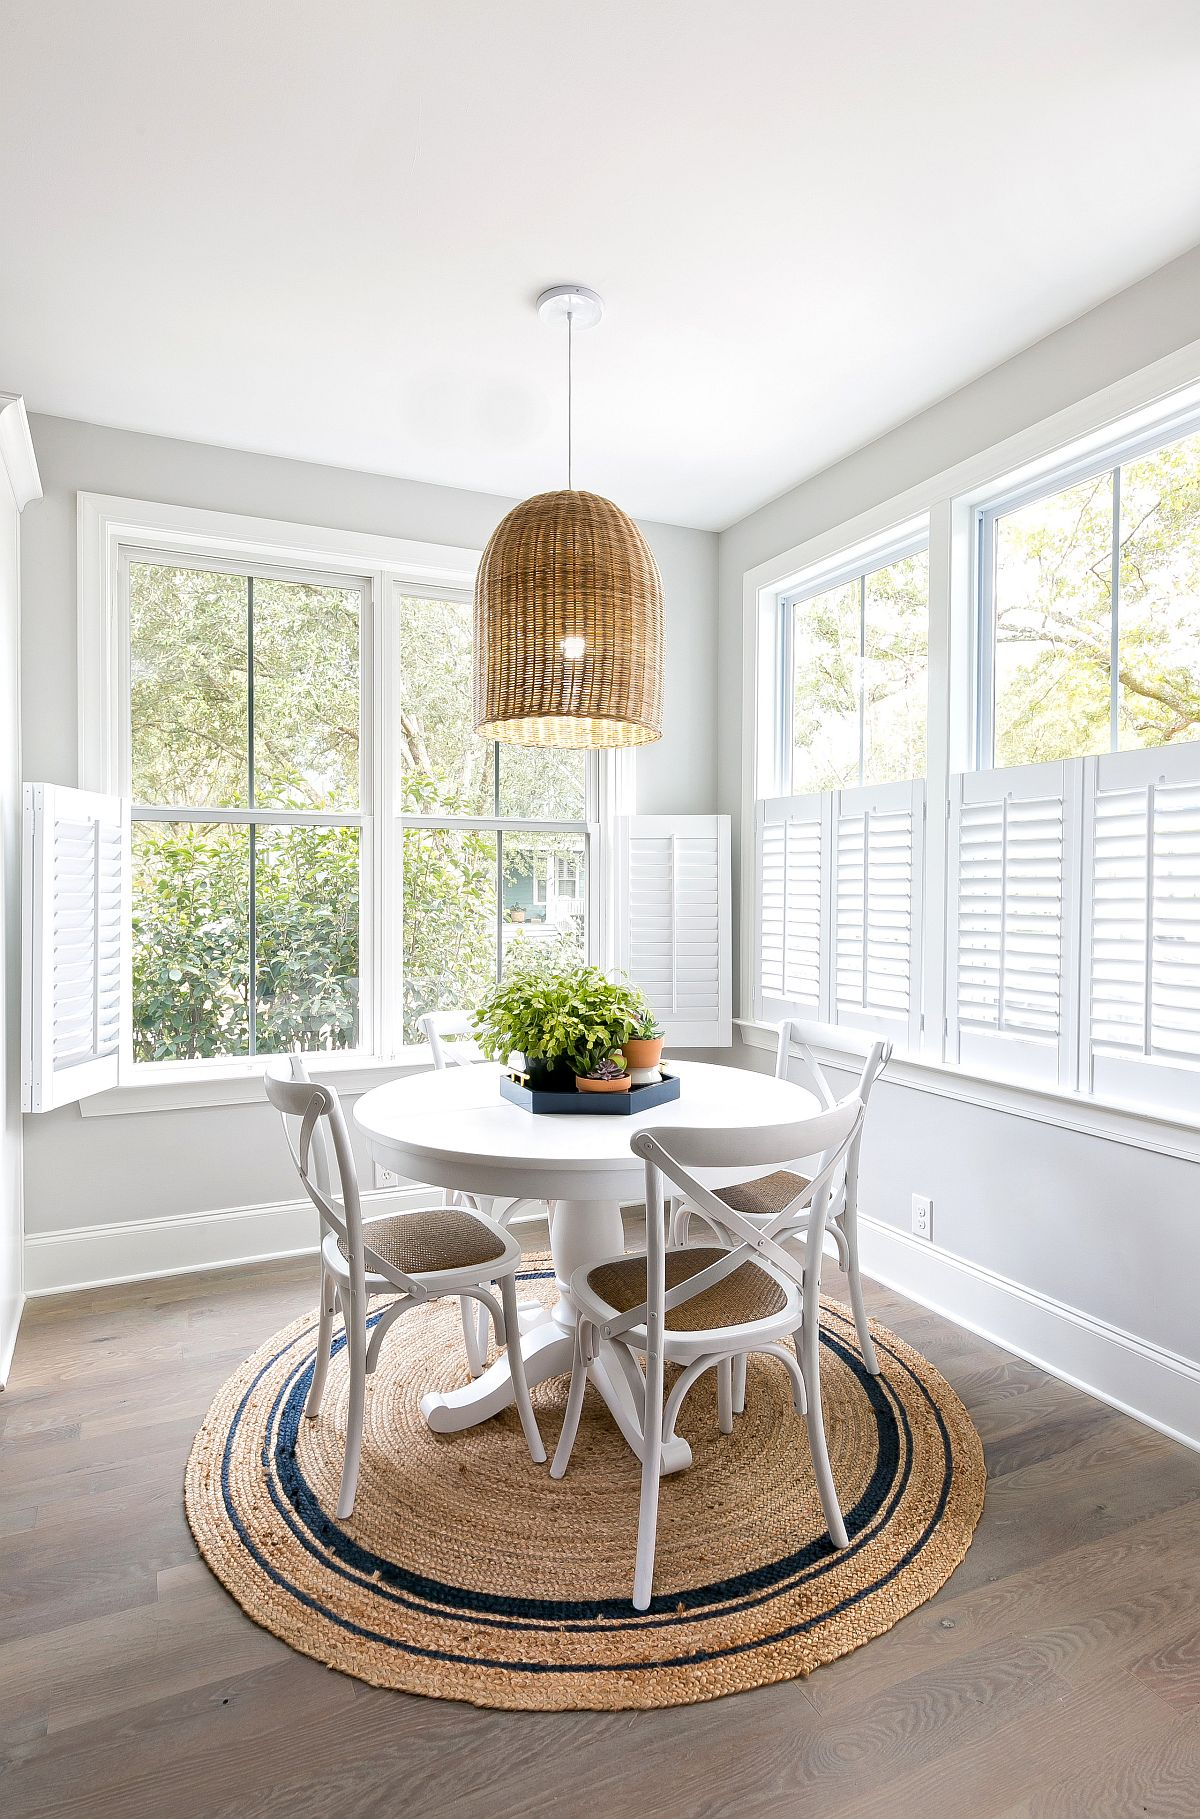 Rug-and-lighting-fixture-add-to-the-coastal-chic-appeal-of-this-small-dining-room-33217